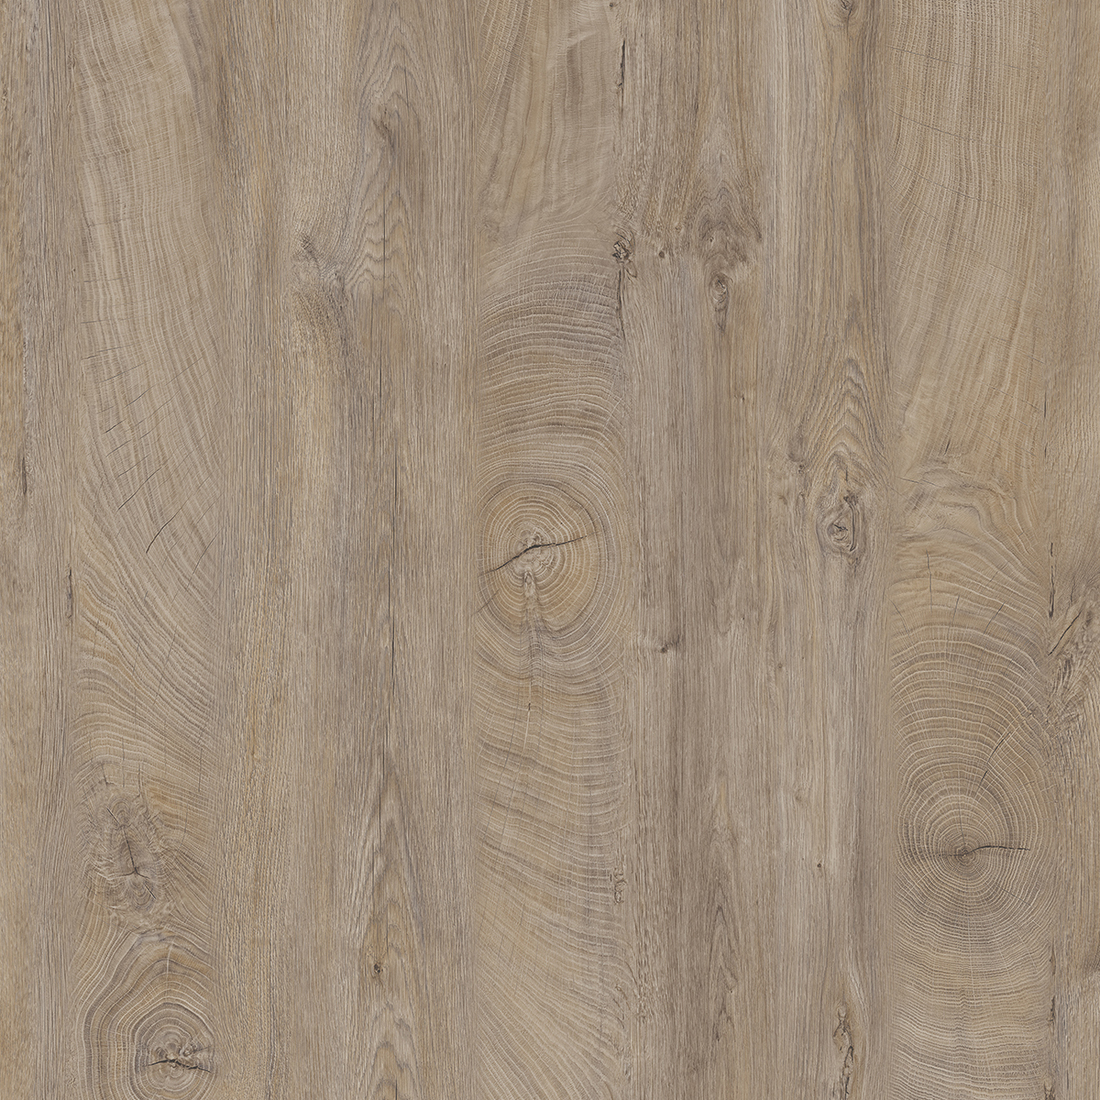 Raw Endgrain Oak